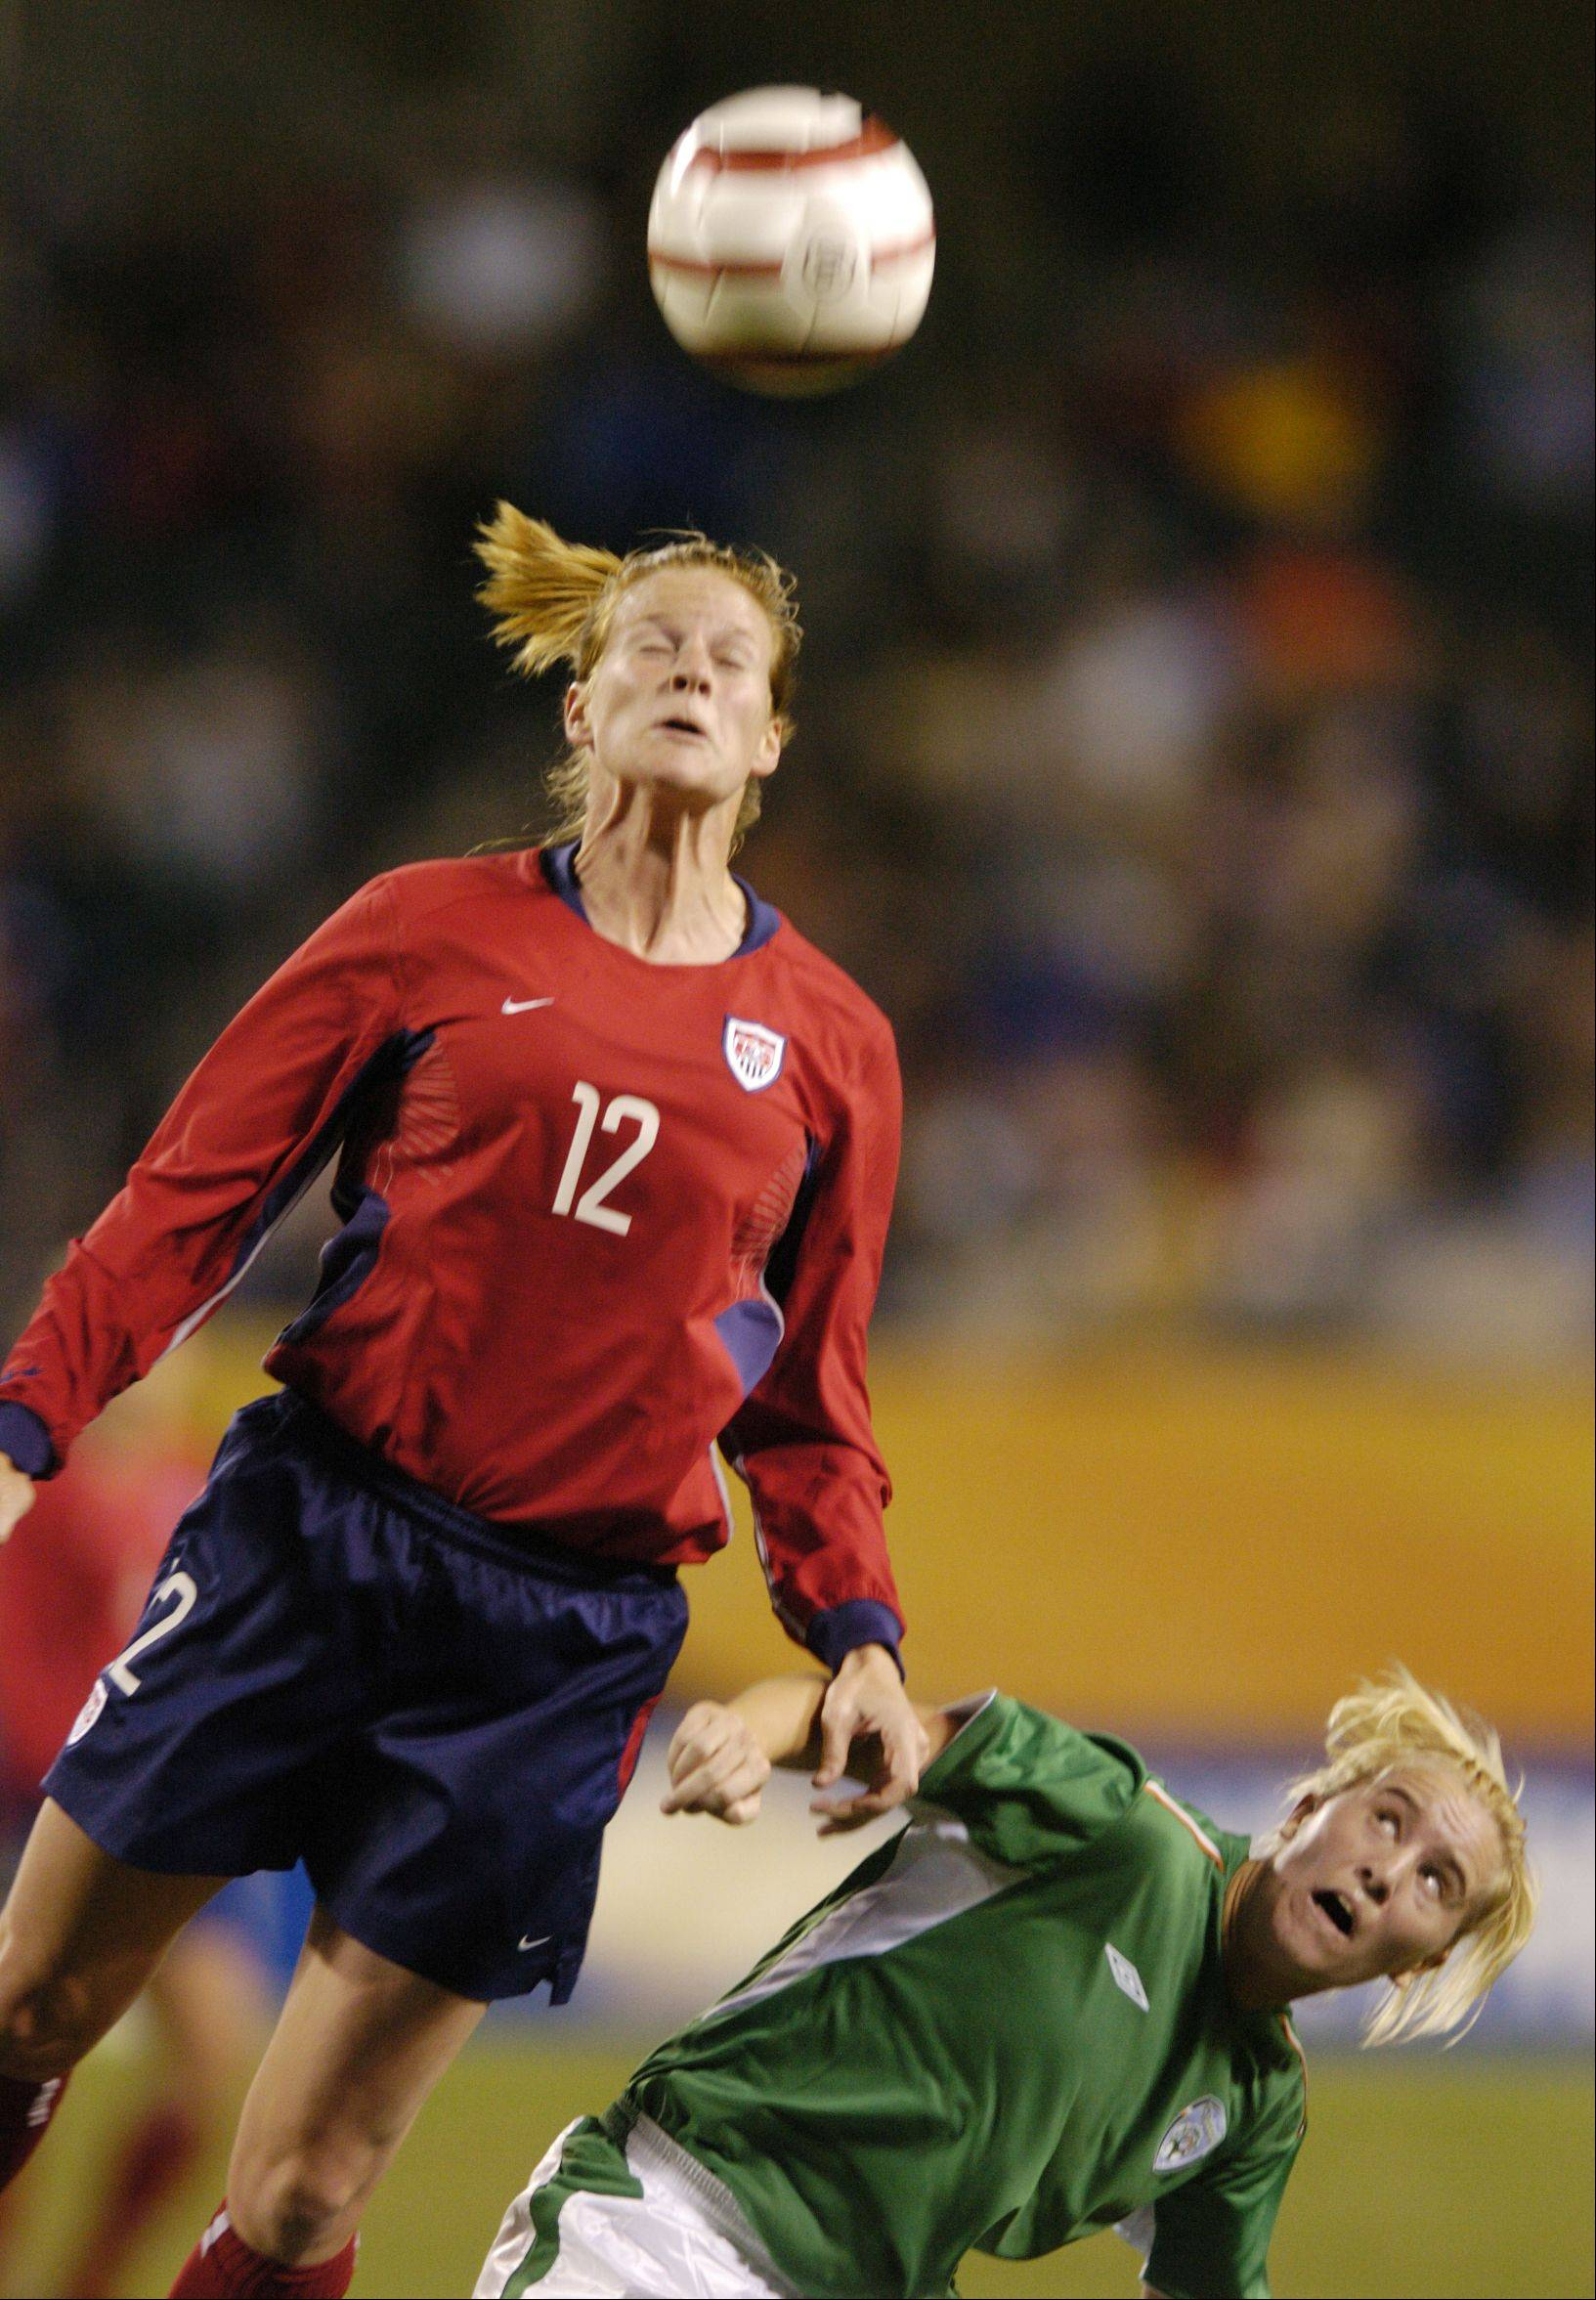 U.S. soccer player Cindy Parlow wins a header against Ireland's Michelle Walsh during a game at Soldier Field in 2004. Parlow retired in 2006 because of post-concussion syndrome.